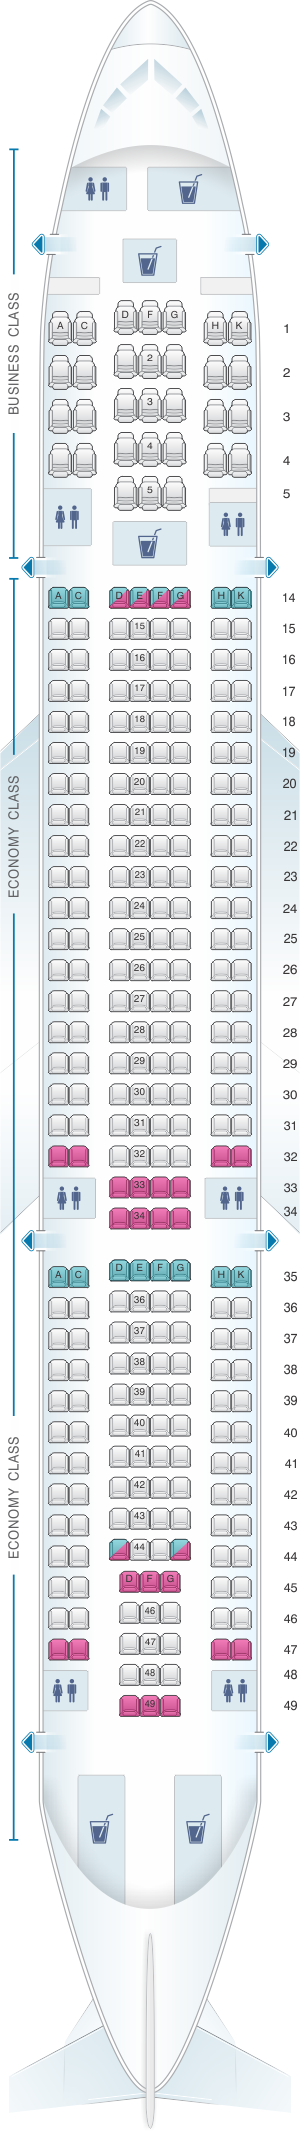 Seat Map Hi Fly Airbus A330 200 298pax Seatmaestro